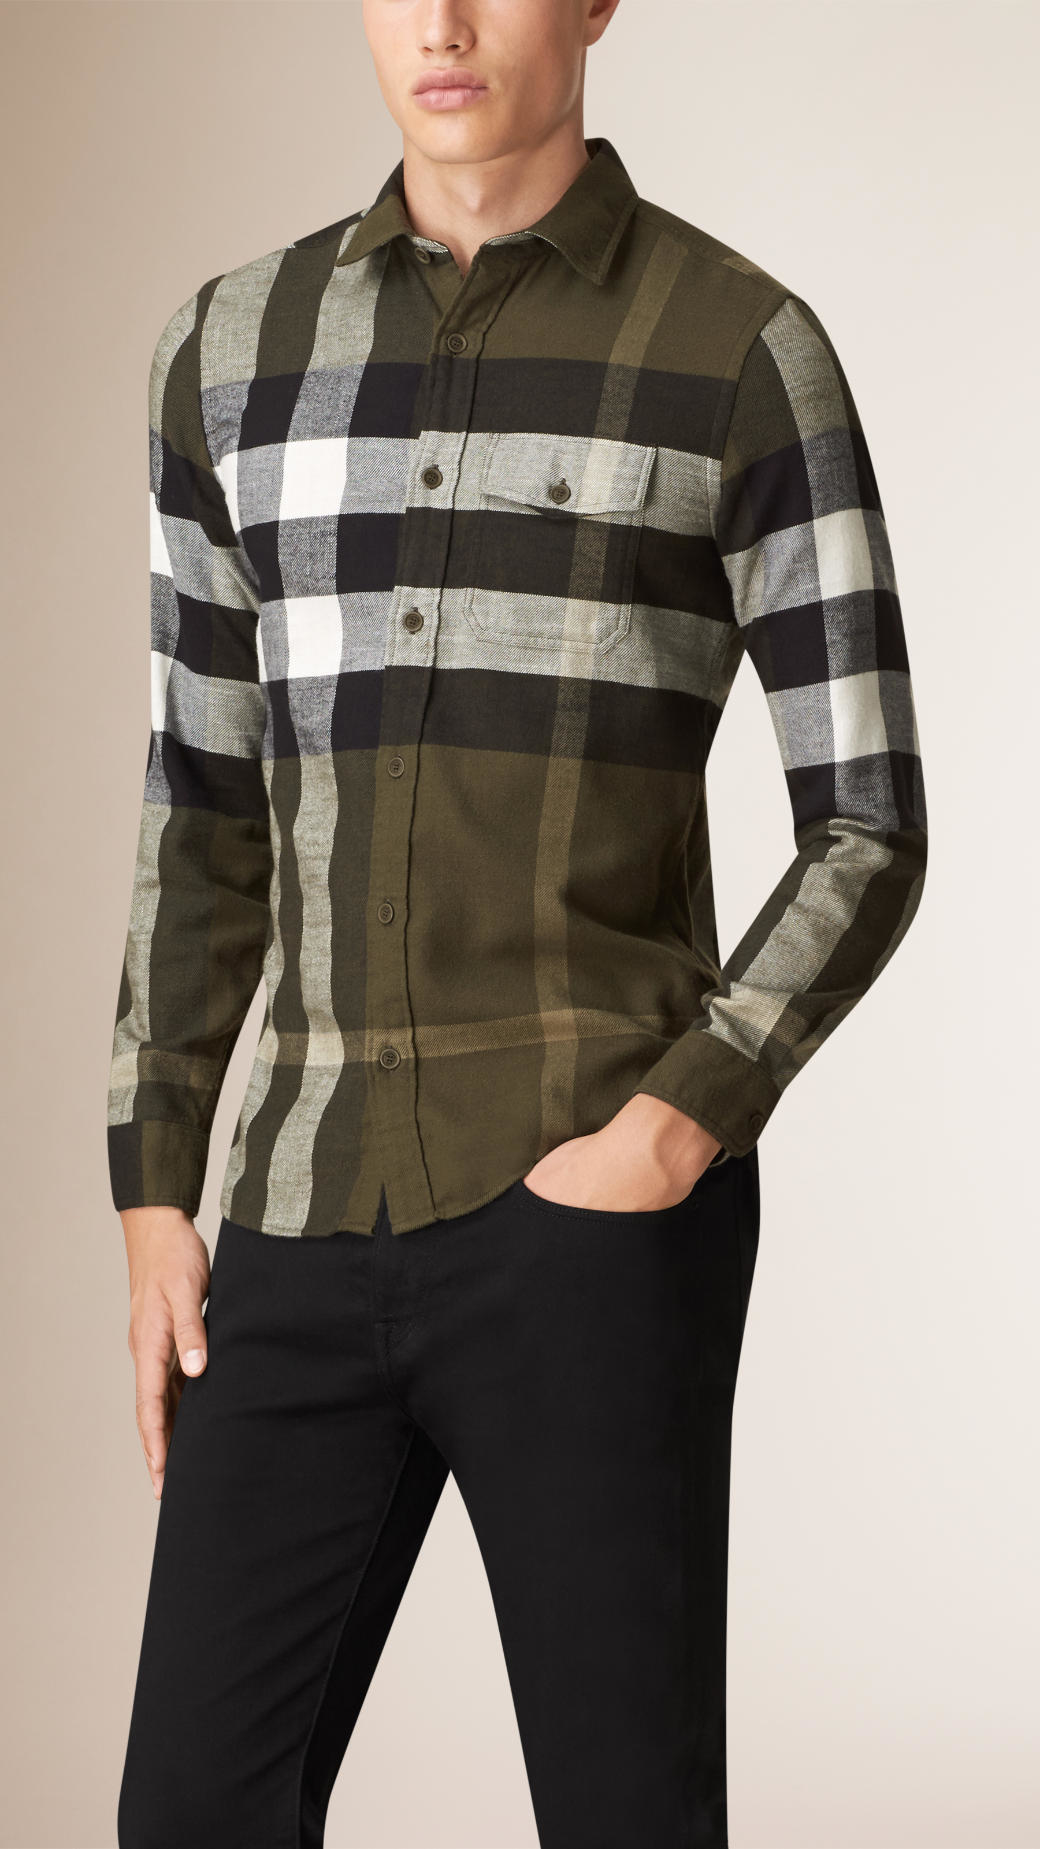 Lyst - Burberry Exploded Check Cotton Flannel Shirt Olive Green in ...